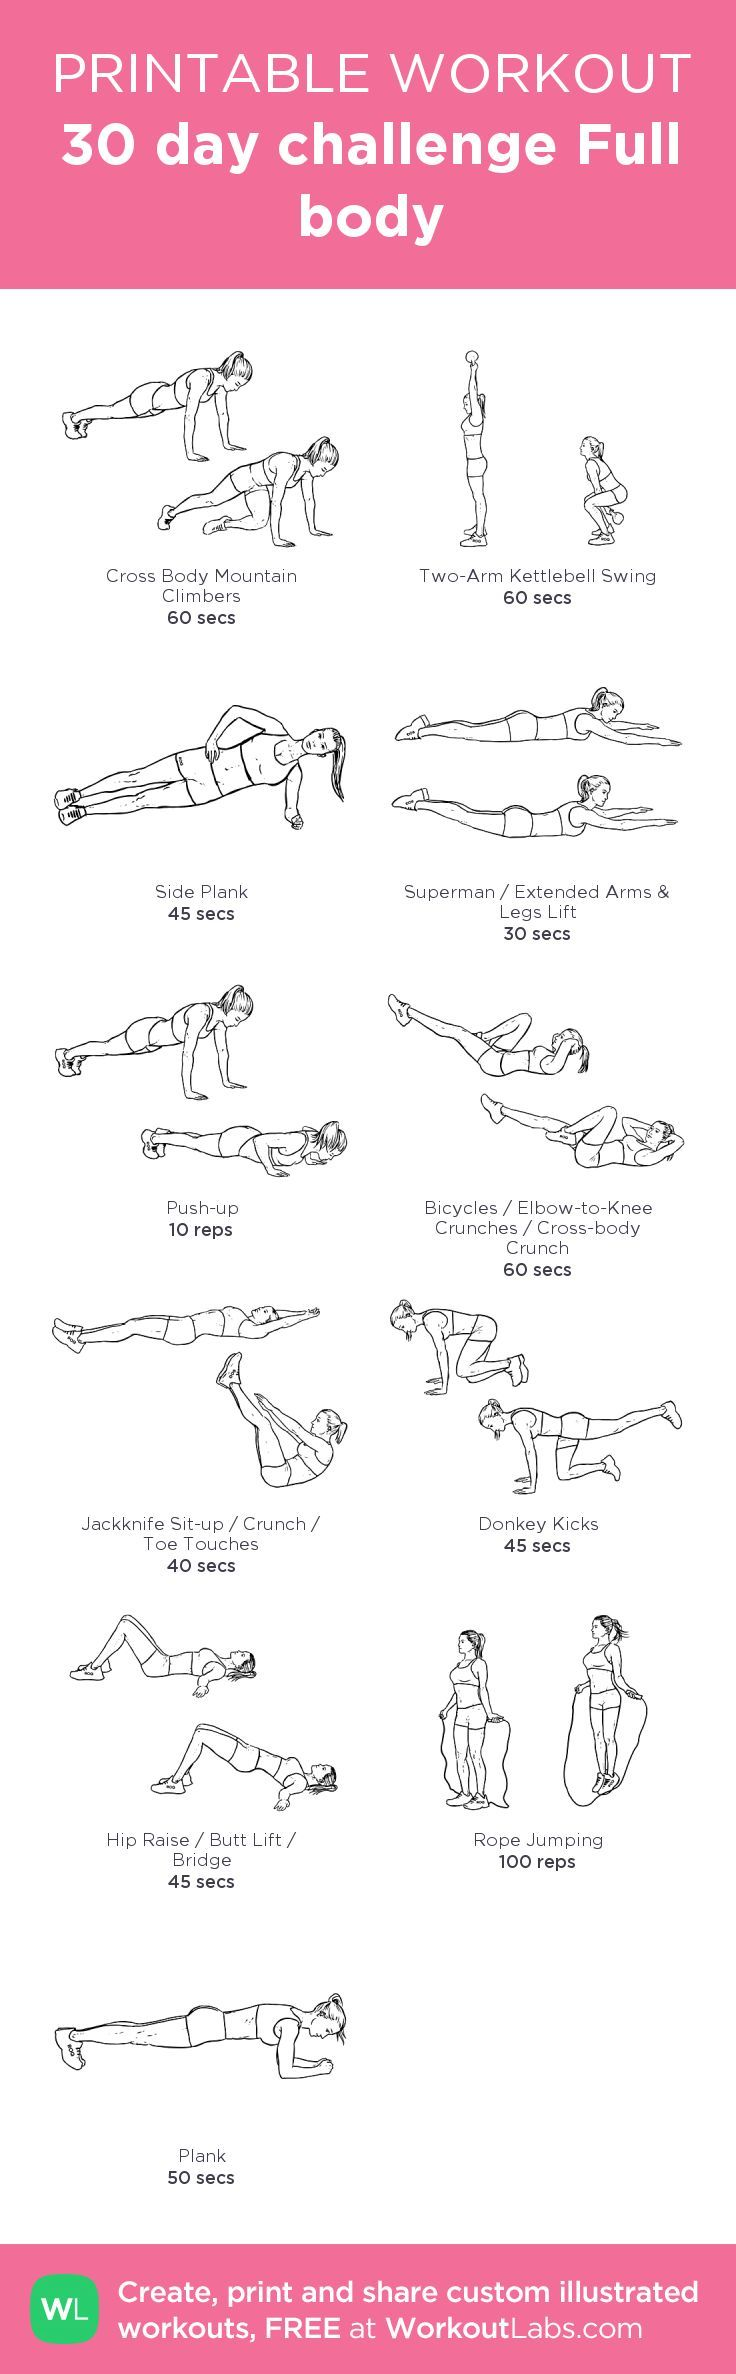 30 Day Full Body Workout! Perfect for getting into shape in the summertime!